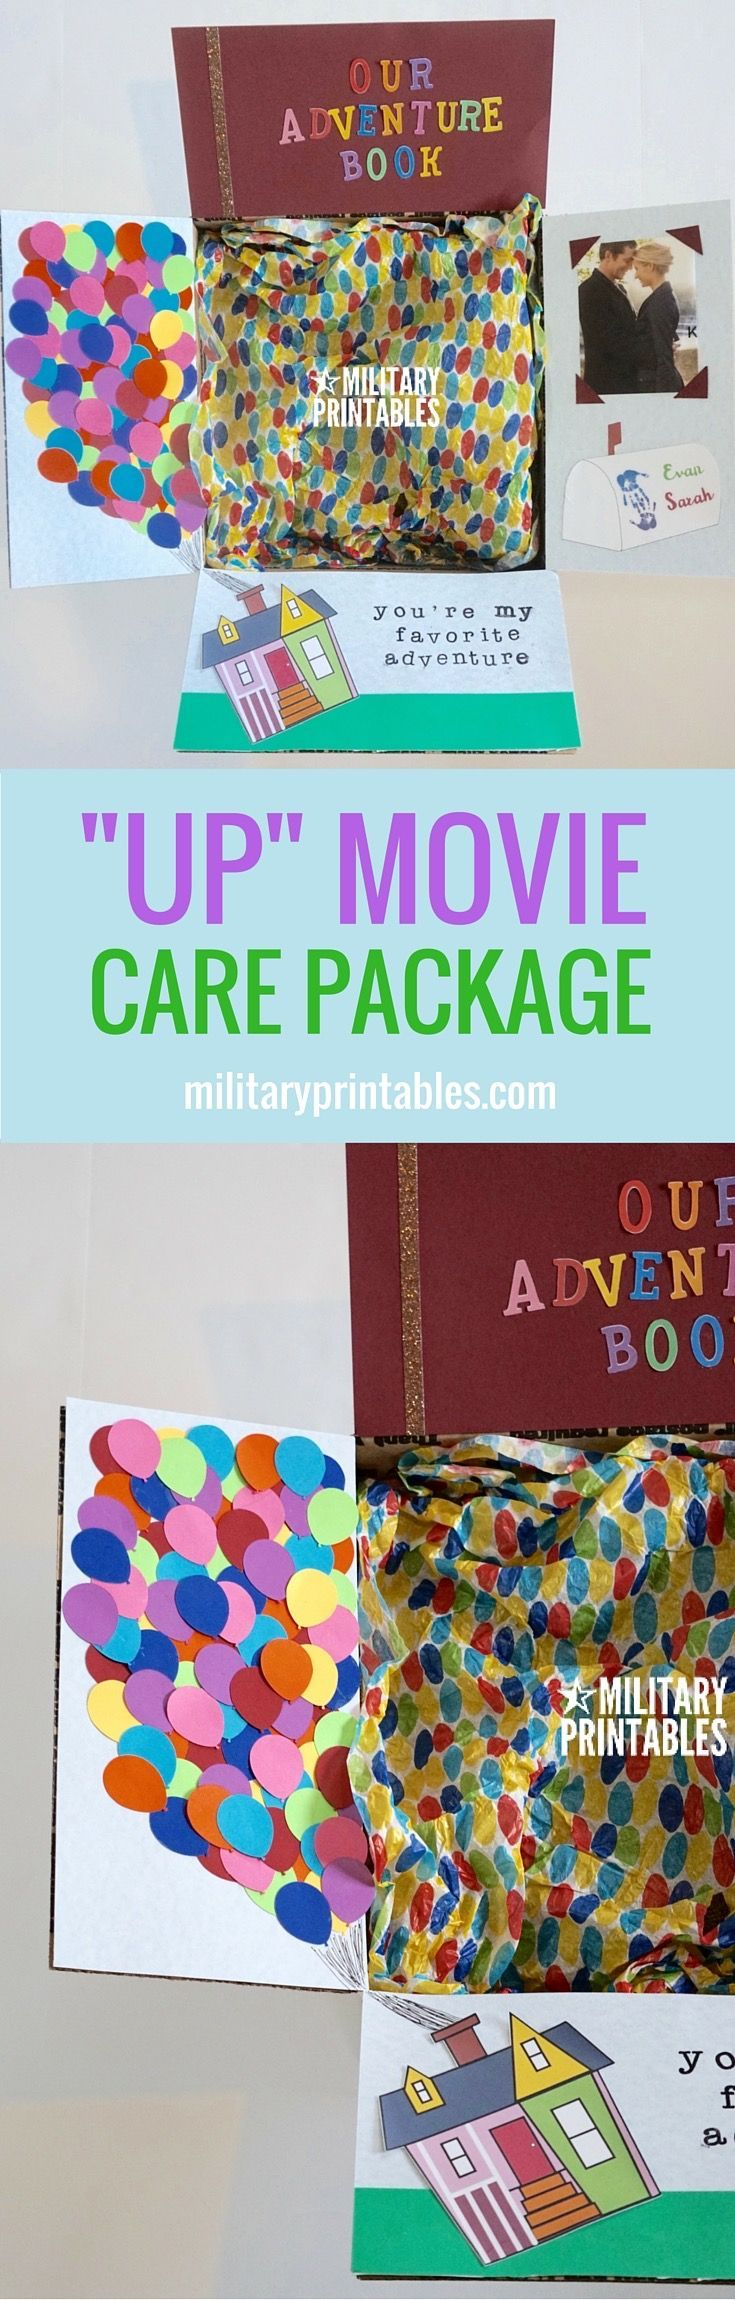 Care Package Idea from the Disney Movie